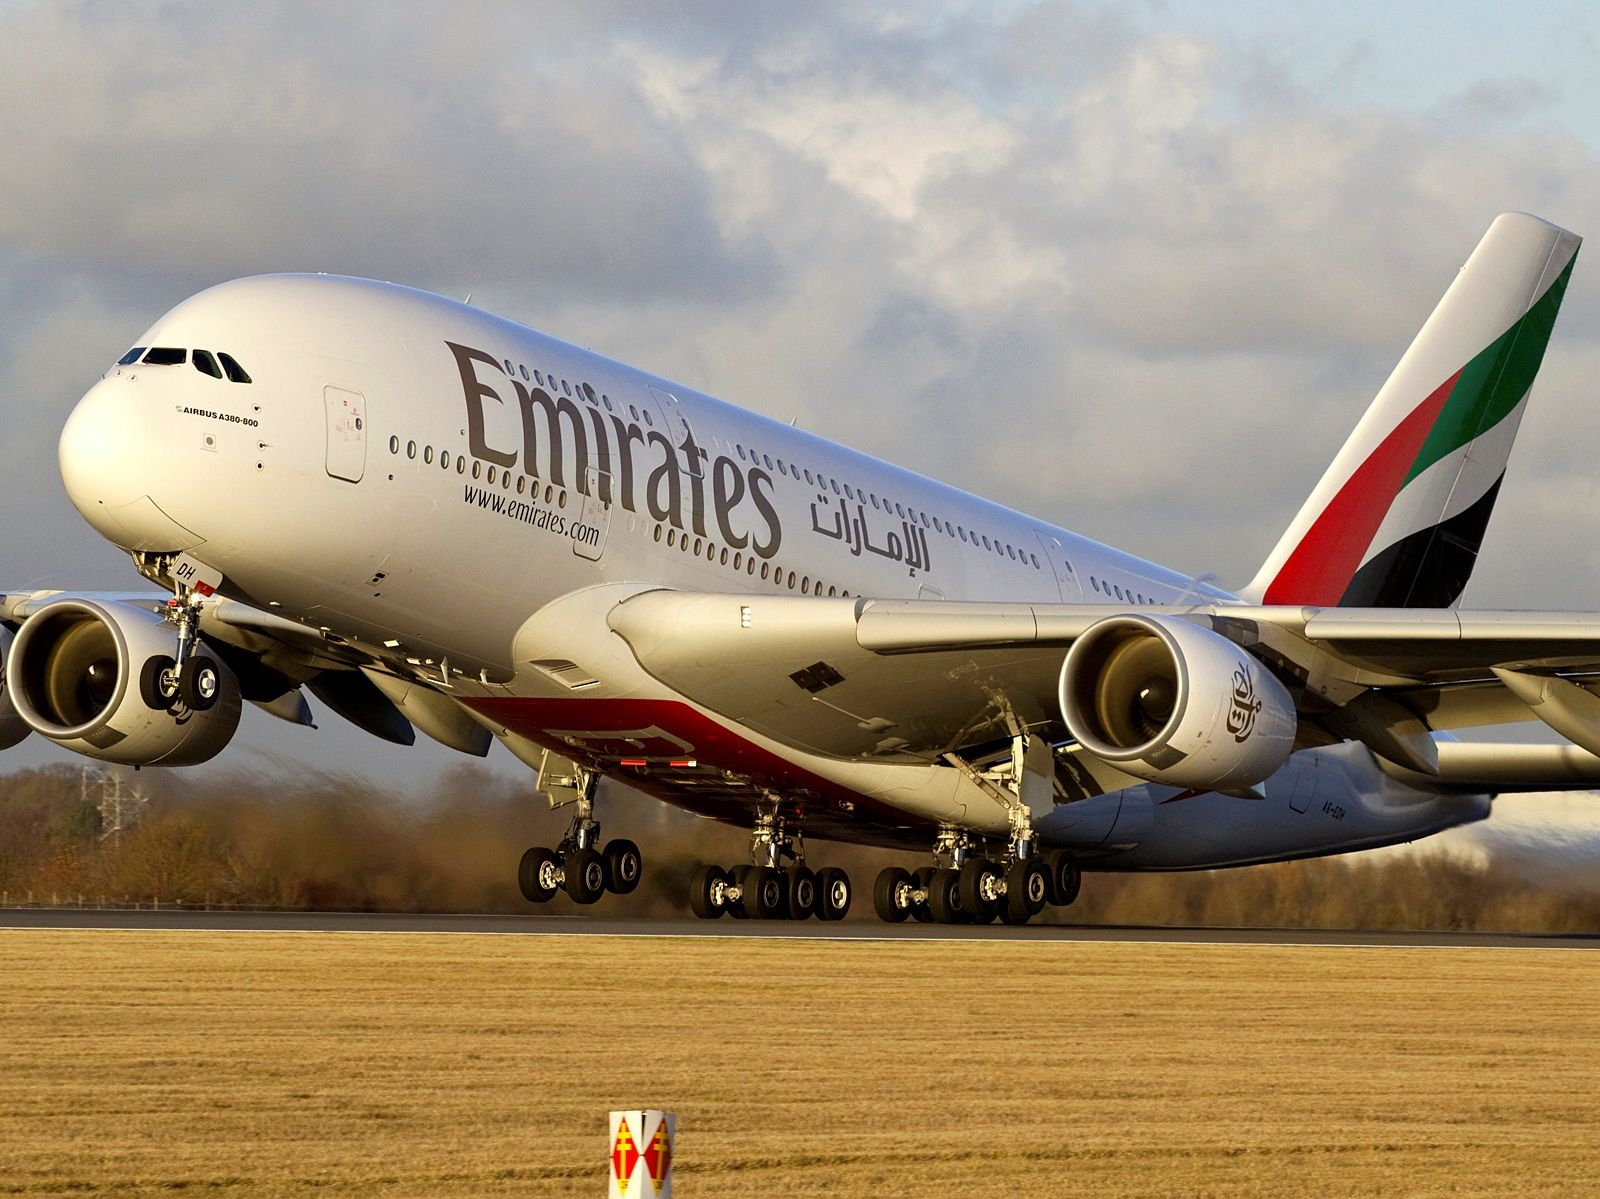 Emirates Airline Offers A Wonderful Experience For Those Traveling